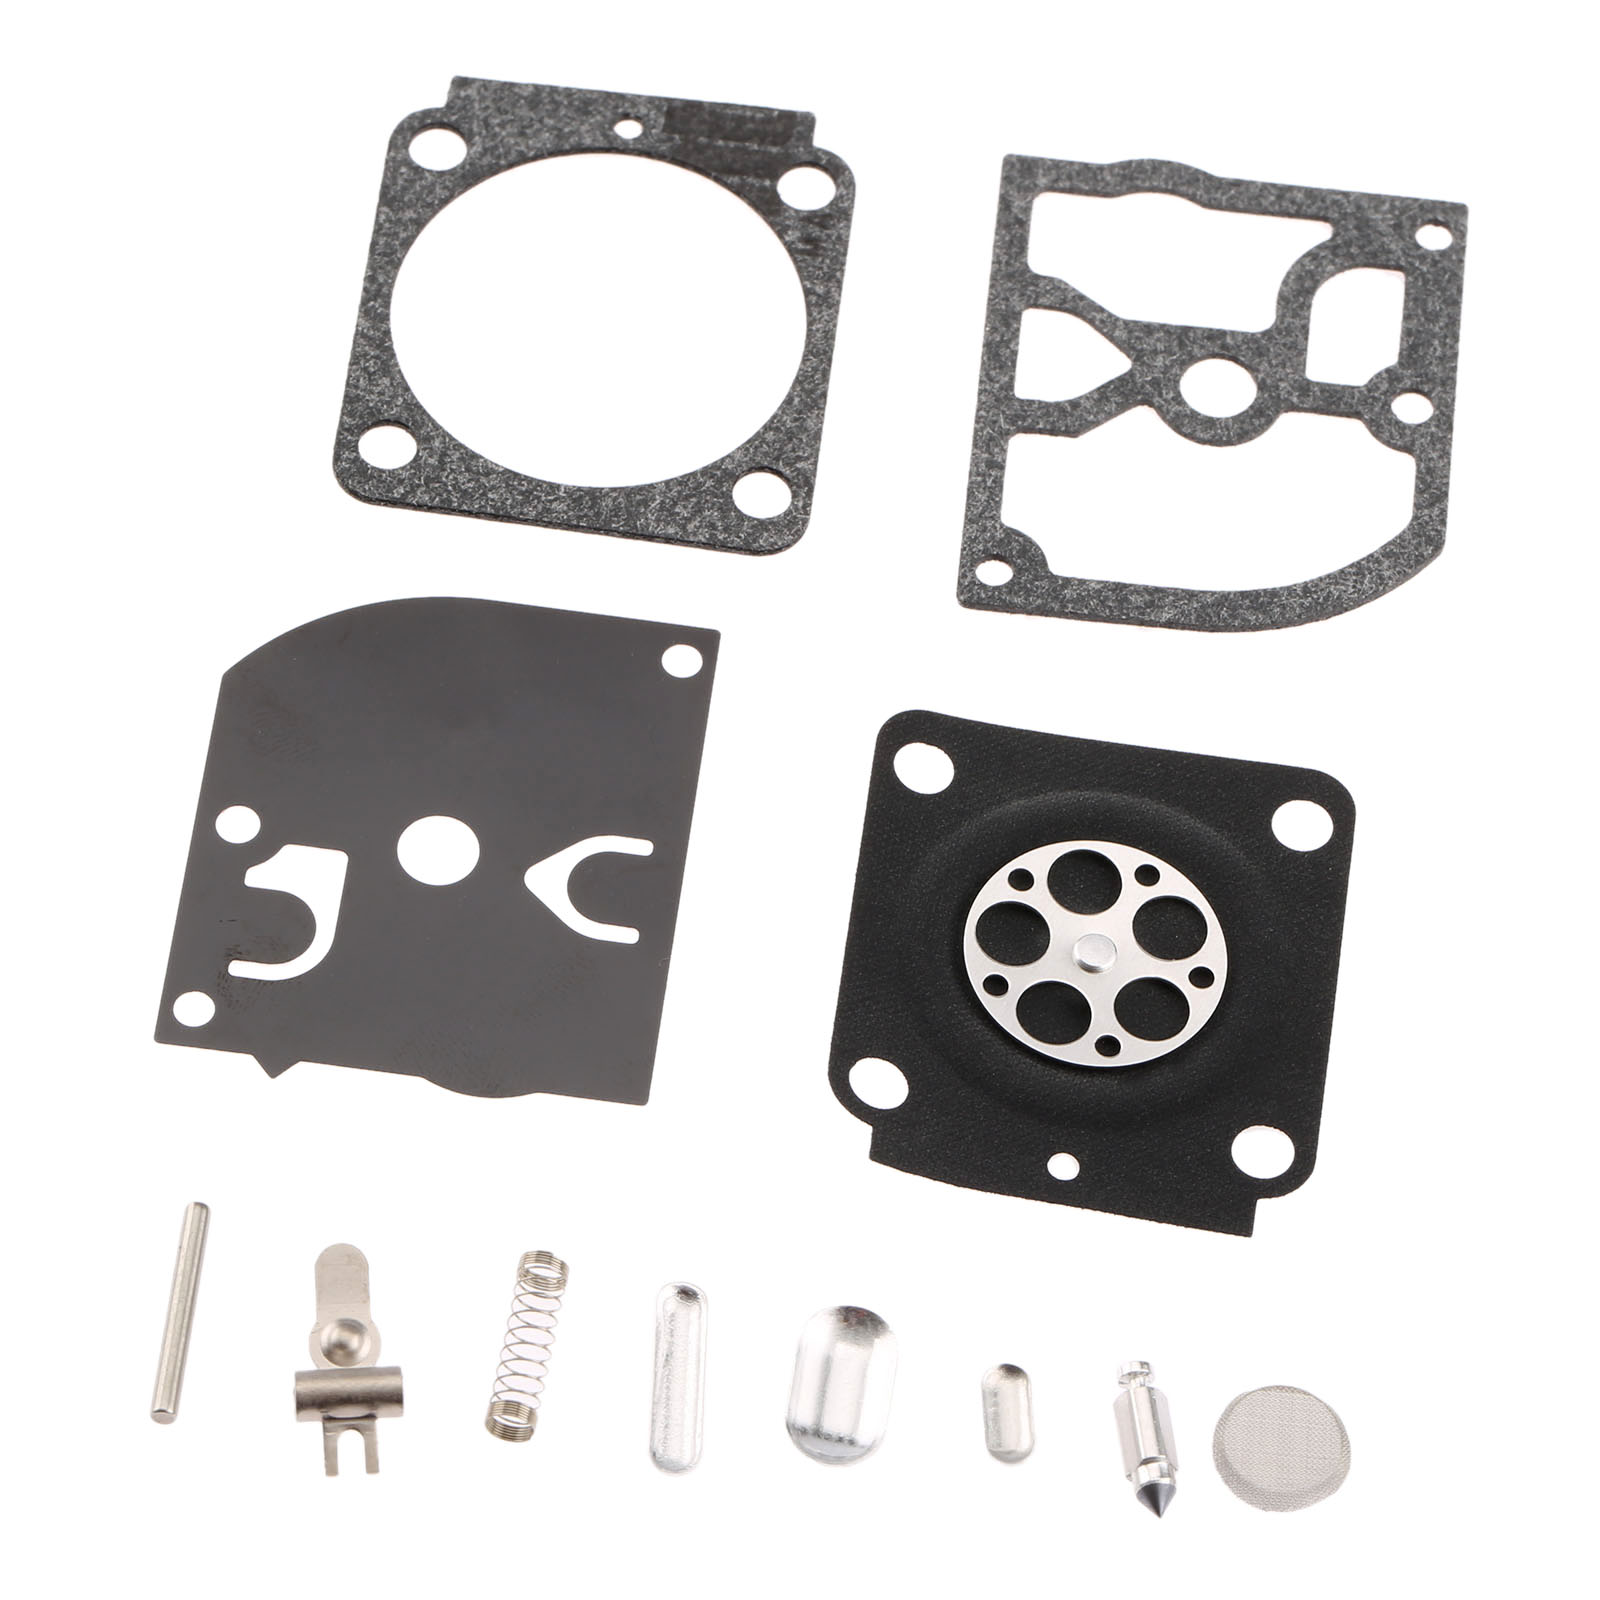 Carburetor Repair Kit Chainsaw Trimmer Parts RB-100 Gasket Diaphragm For Zama STIHL HS45 FS55 FS38 BG45 MM55 TILLER ZAMA C1Q